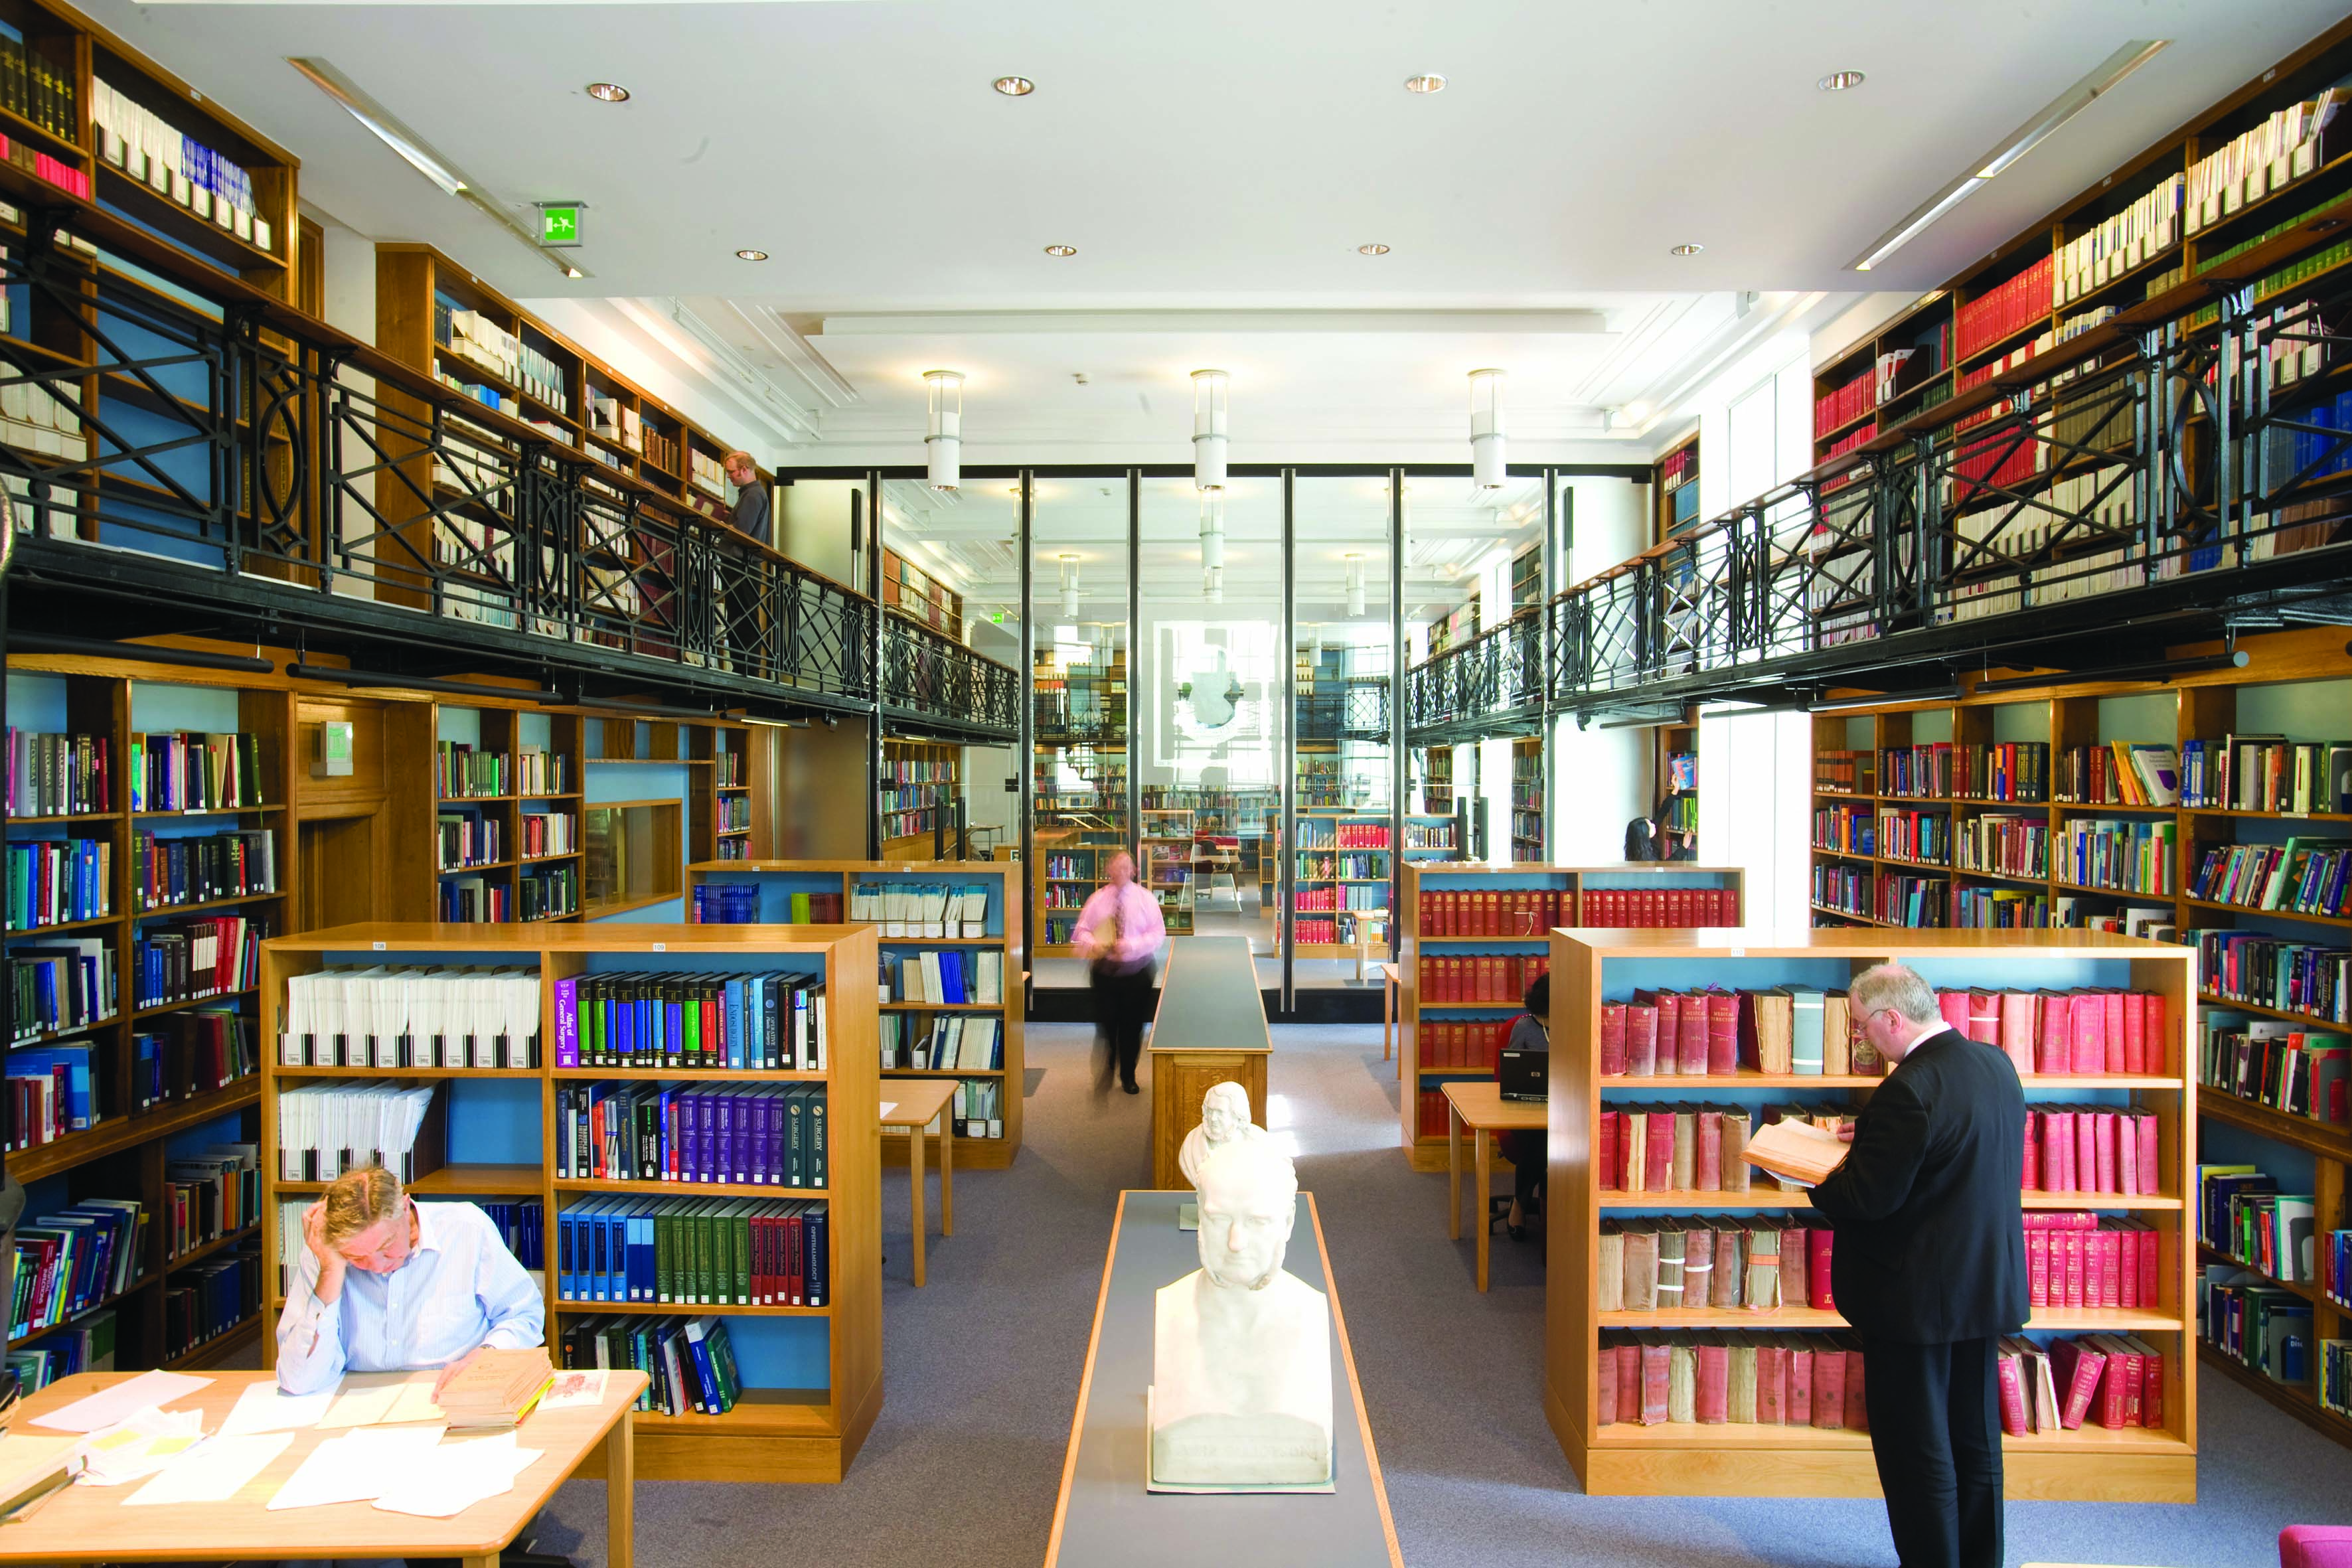 Library - wide shot of interior